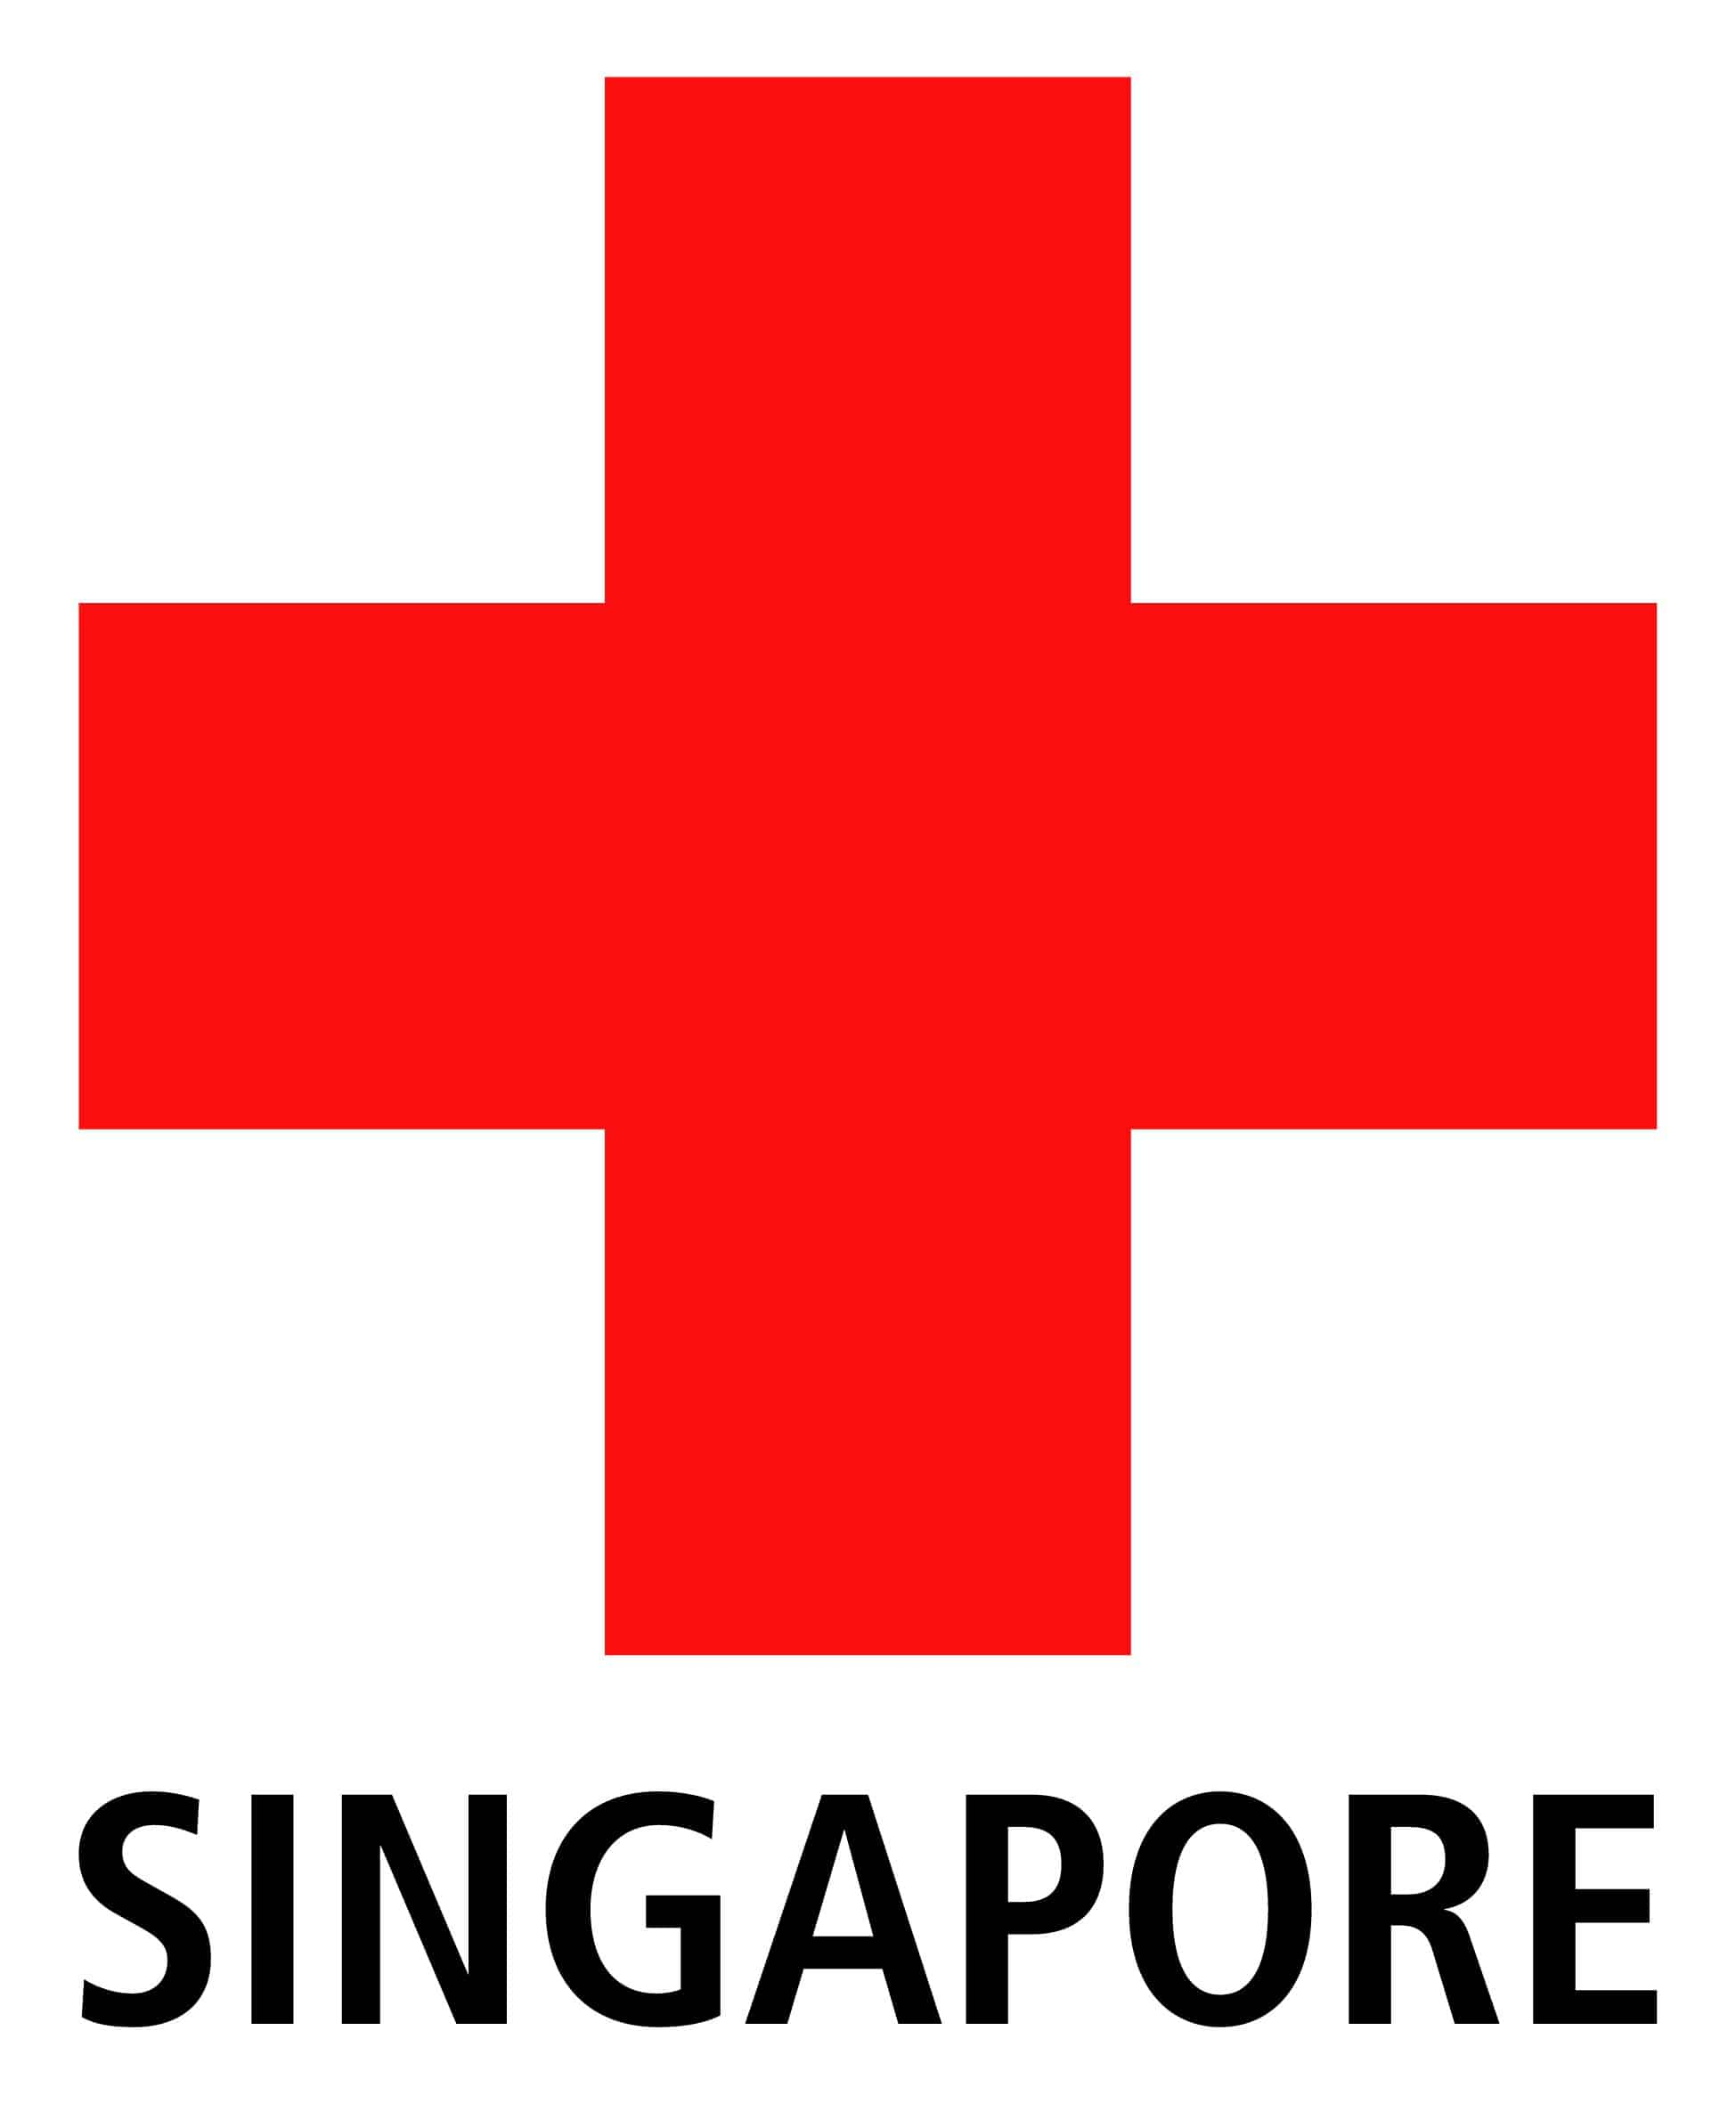 Red cross coupon code for classes furreal unicorn coupon american red cross and bsa training agreement online cpr classes and certification bls first aid 1betcityfo Choice Image